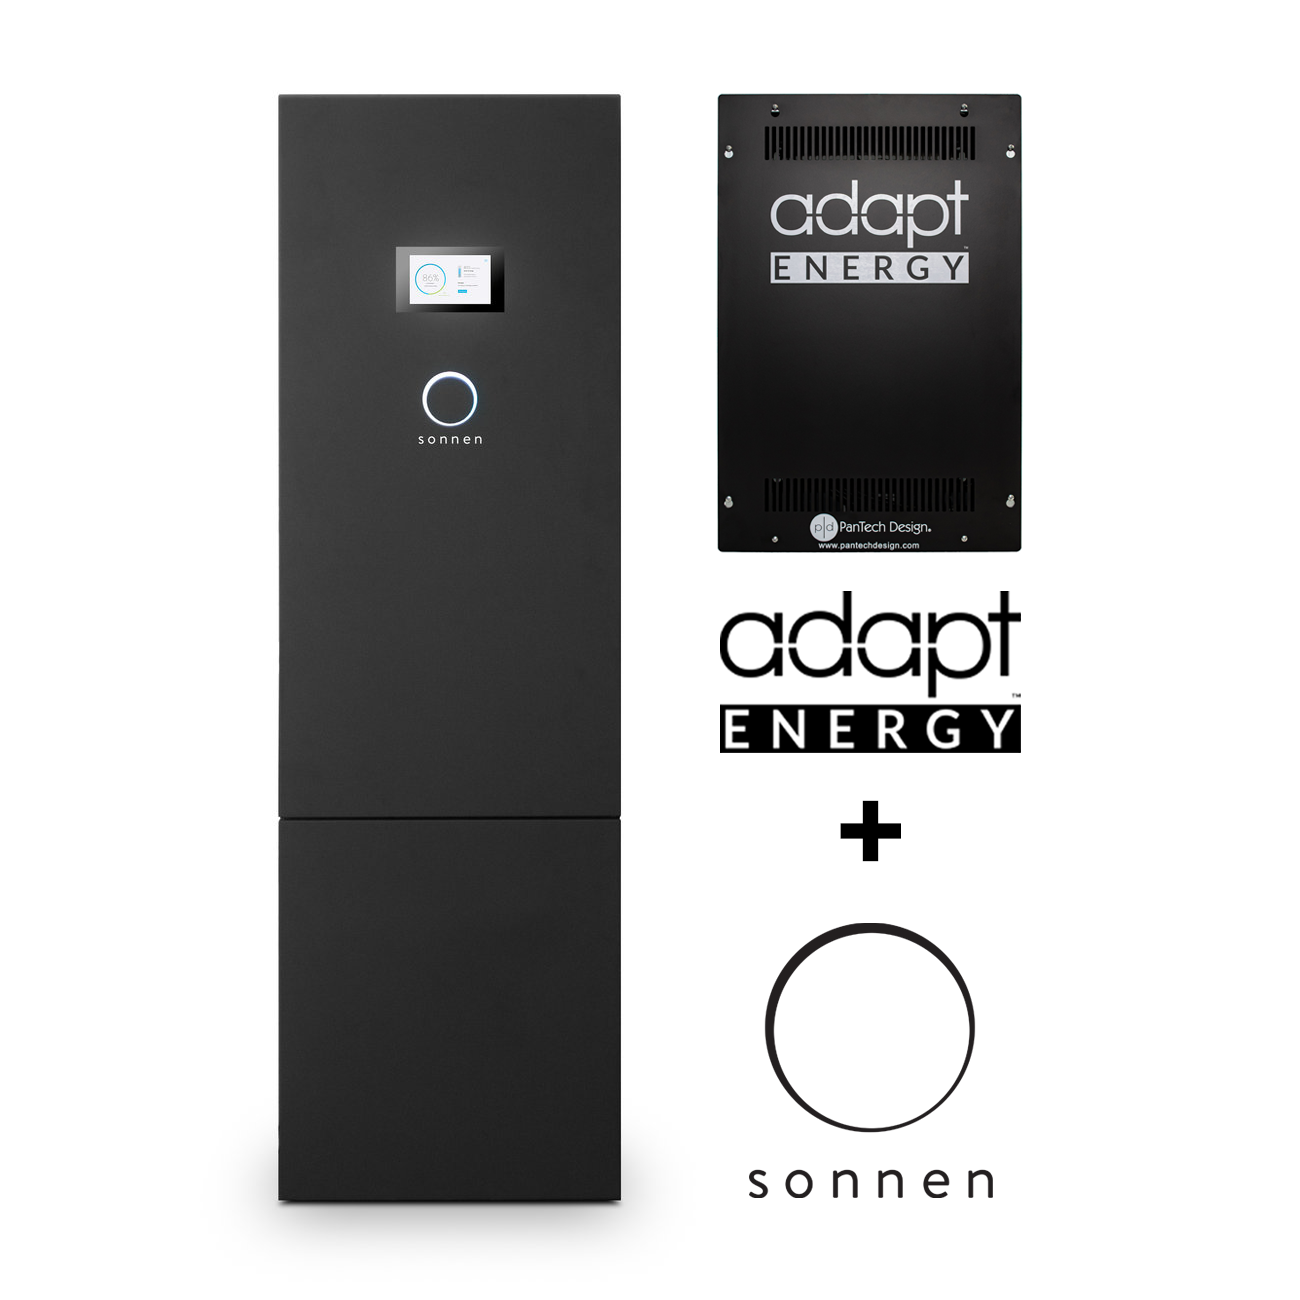 sonnen and PanTech Design, Partner to Launch the Next Generation of Energy Automation